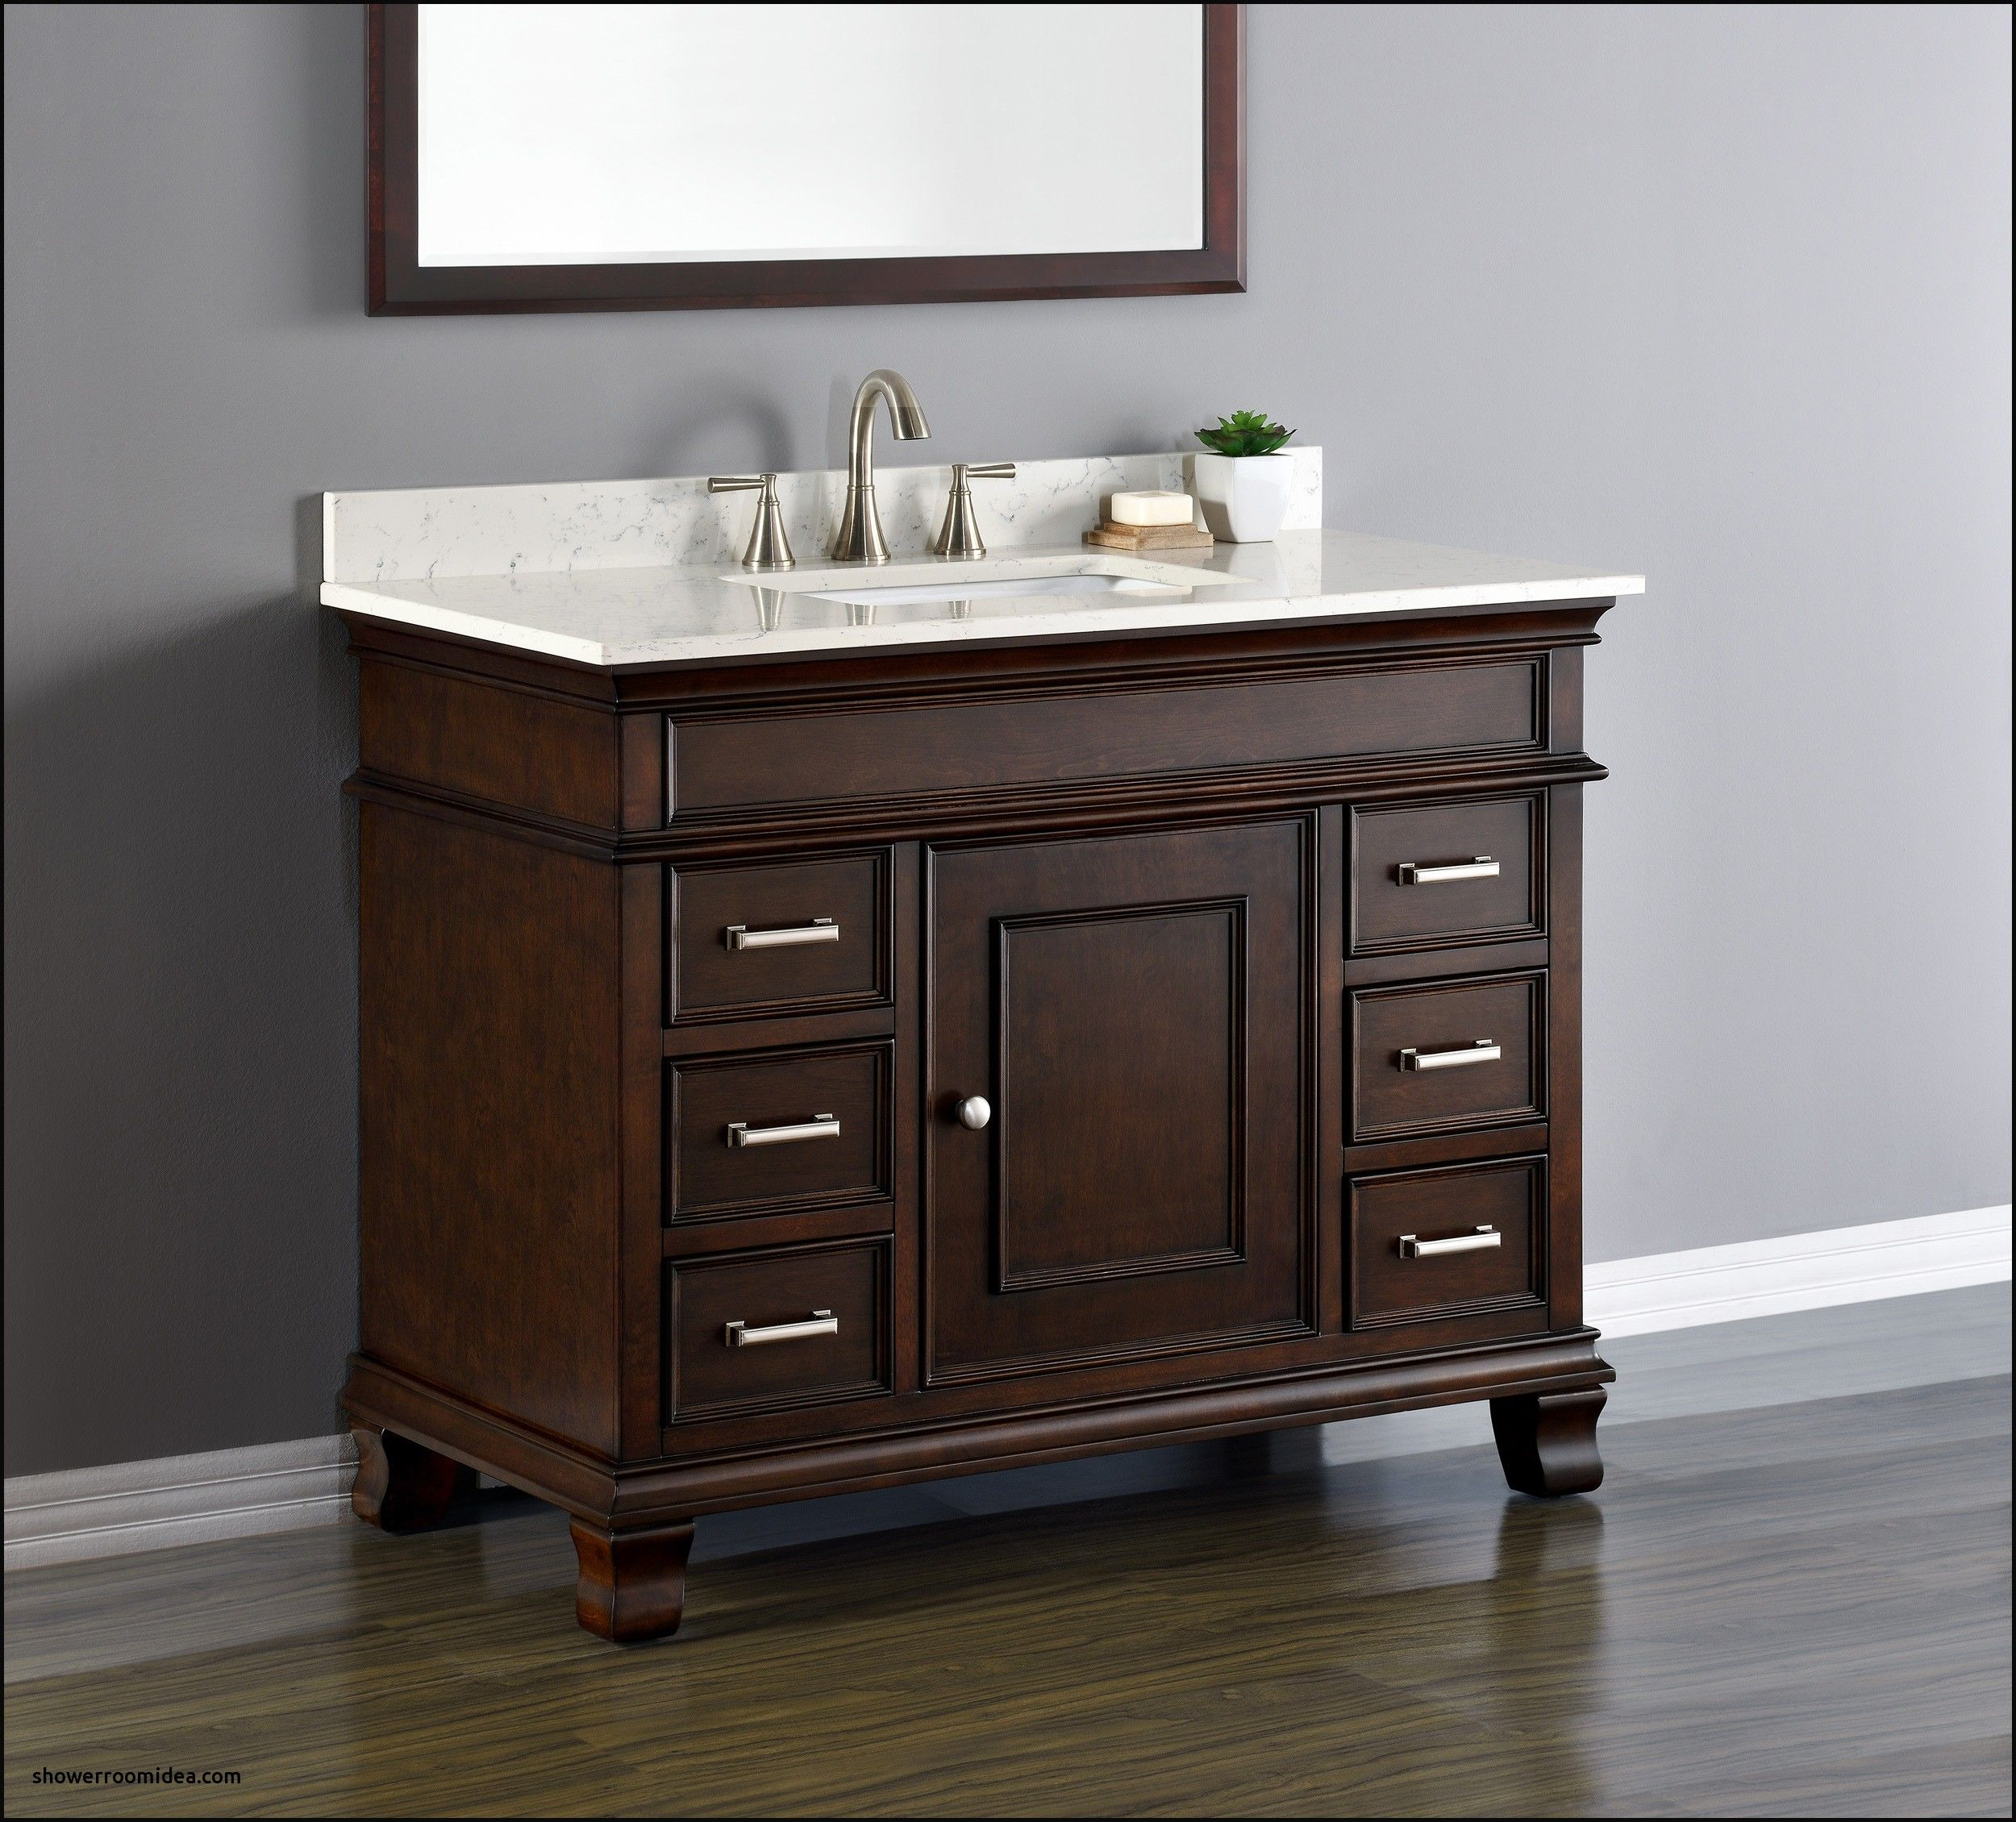 Best Of Wall Mounted Vanities For Small Bathrooms Photograph Fresh Wall  Mounted Vanities For Small